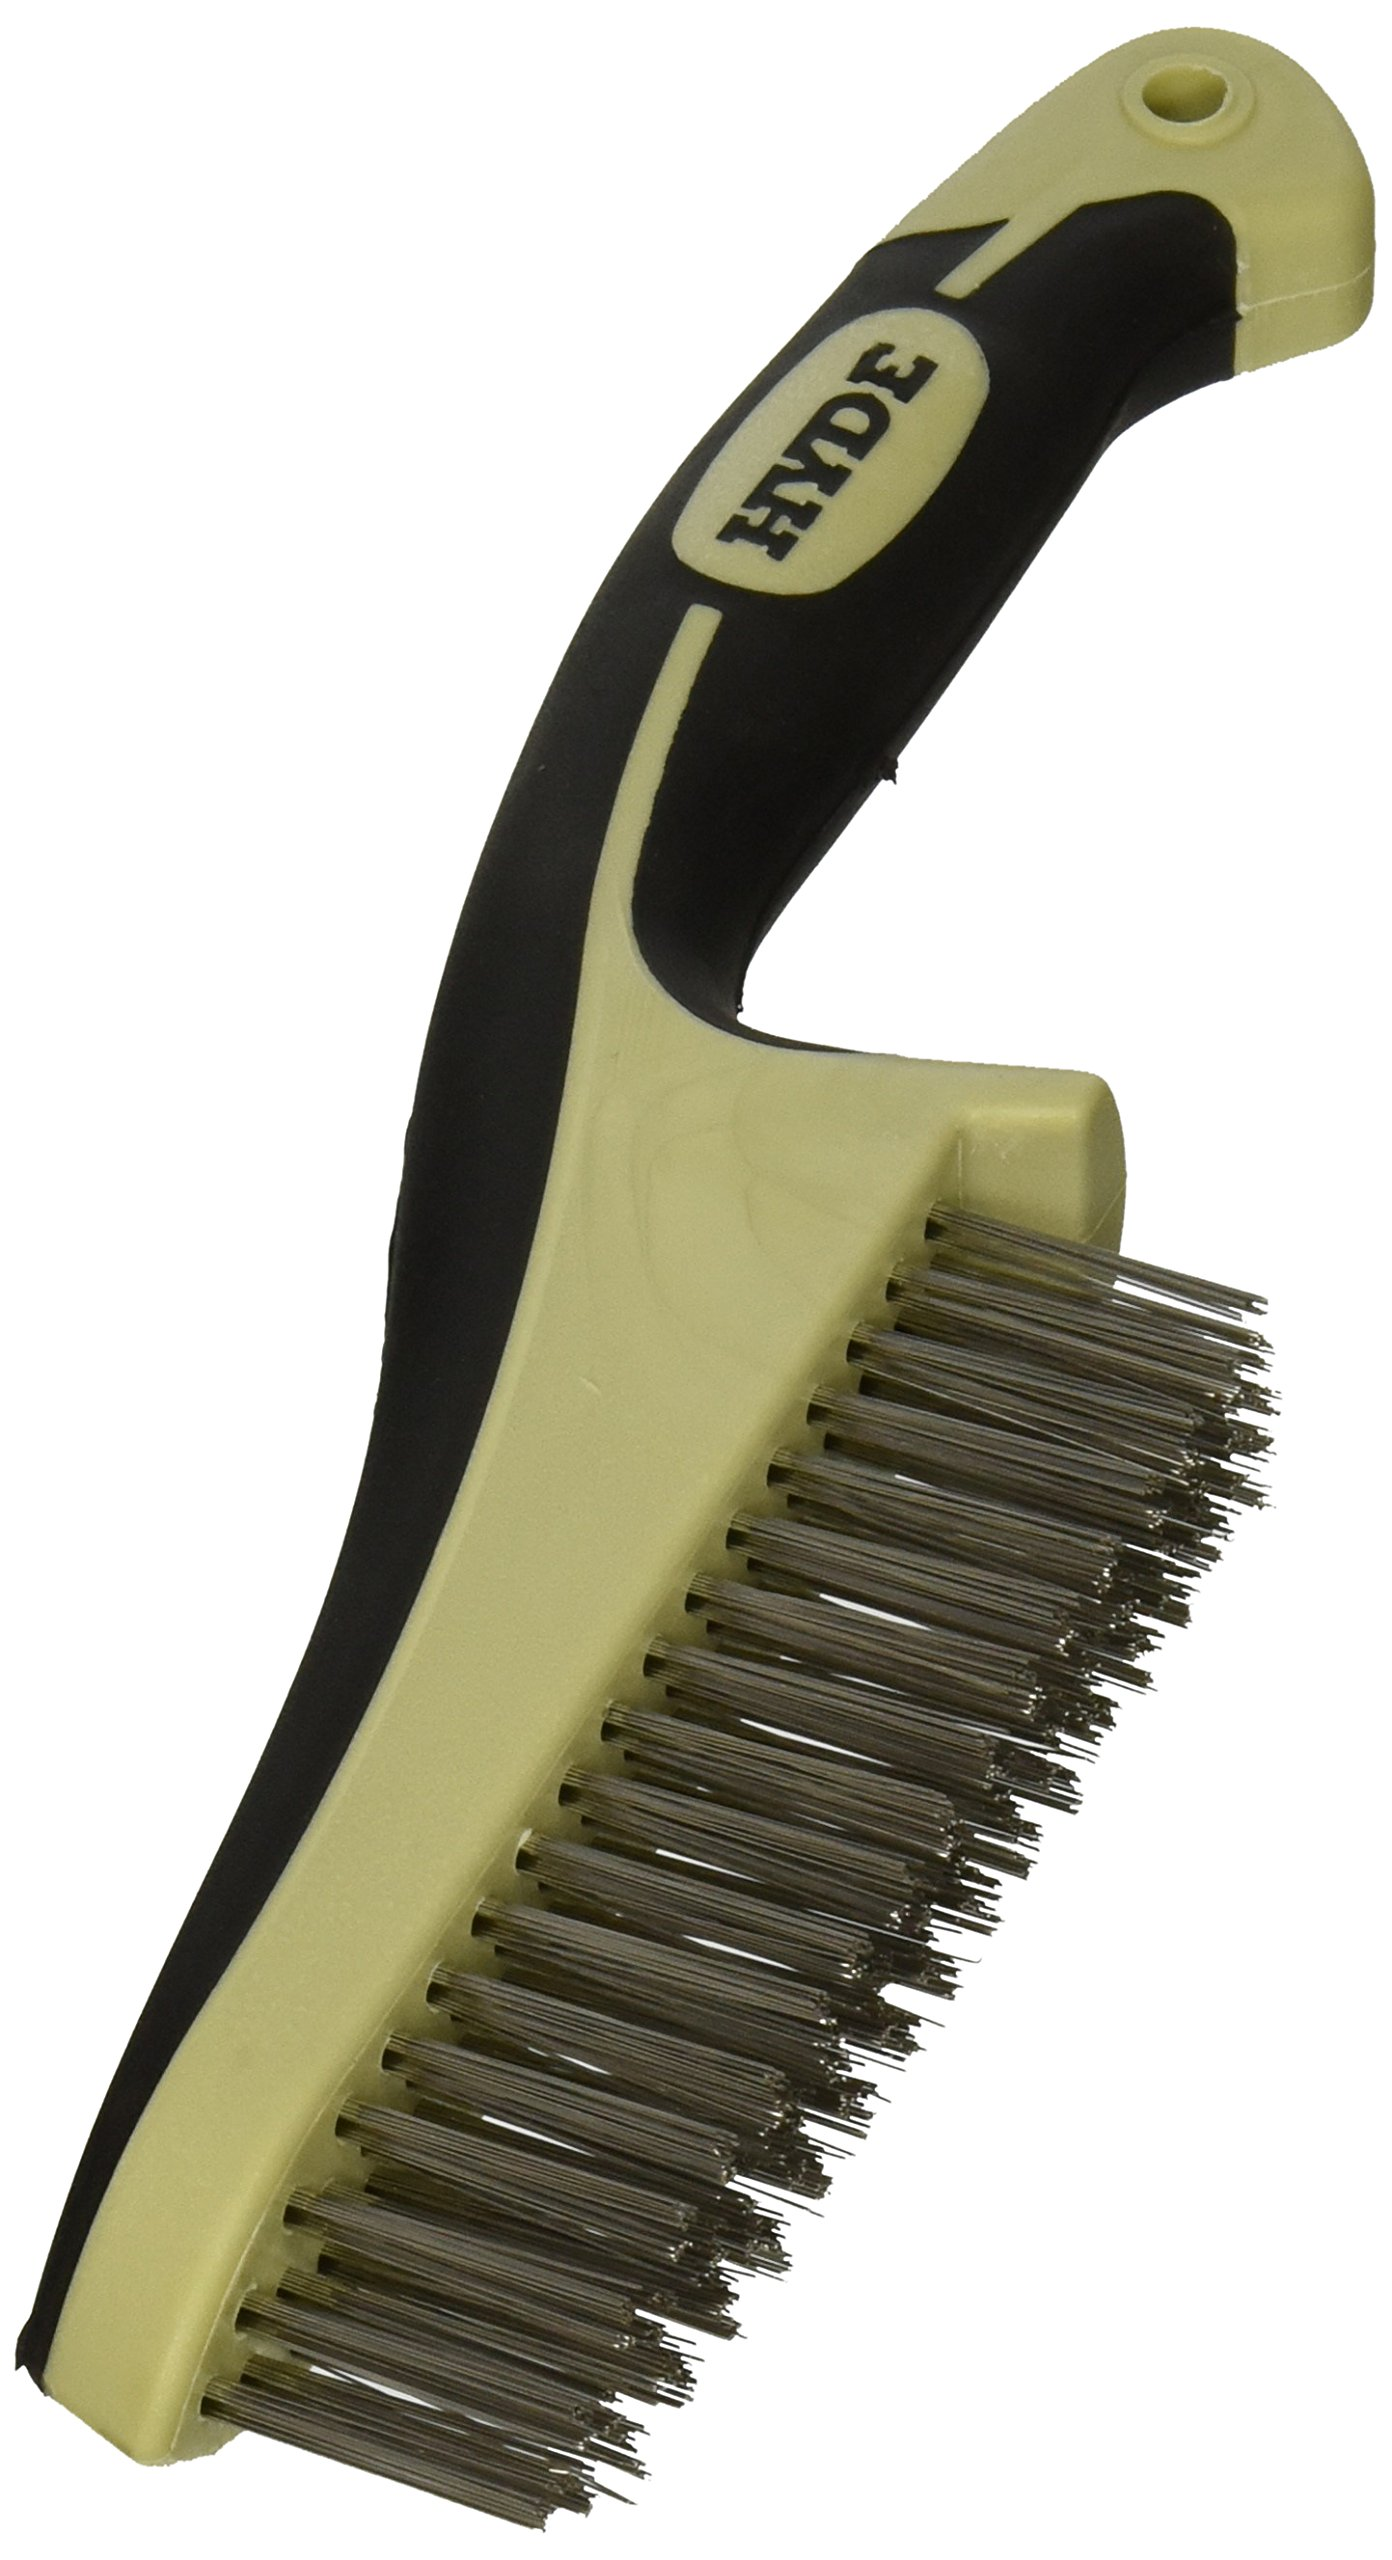 Hyde Mfg 46842 11 in. Maxxgrip Stainless Steel Wire Brush